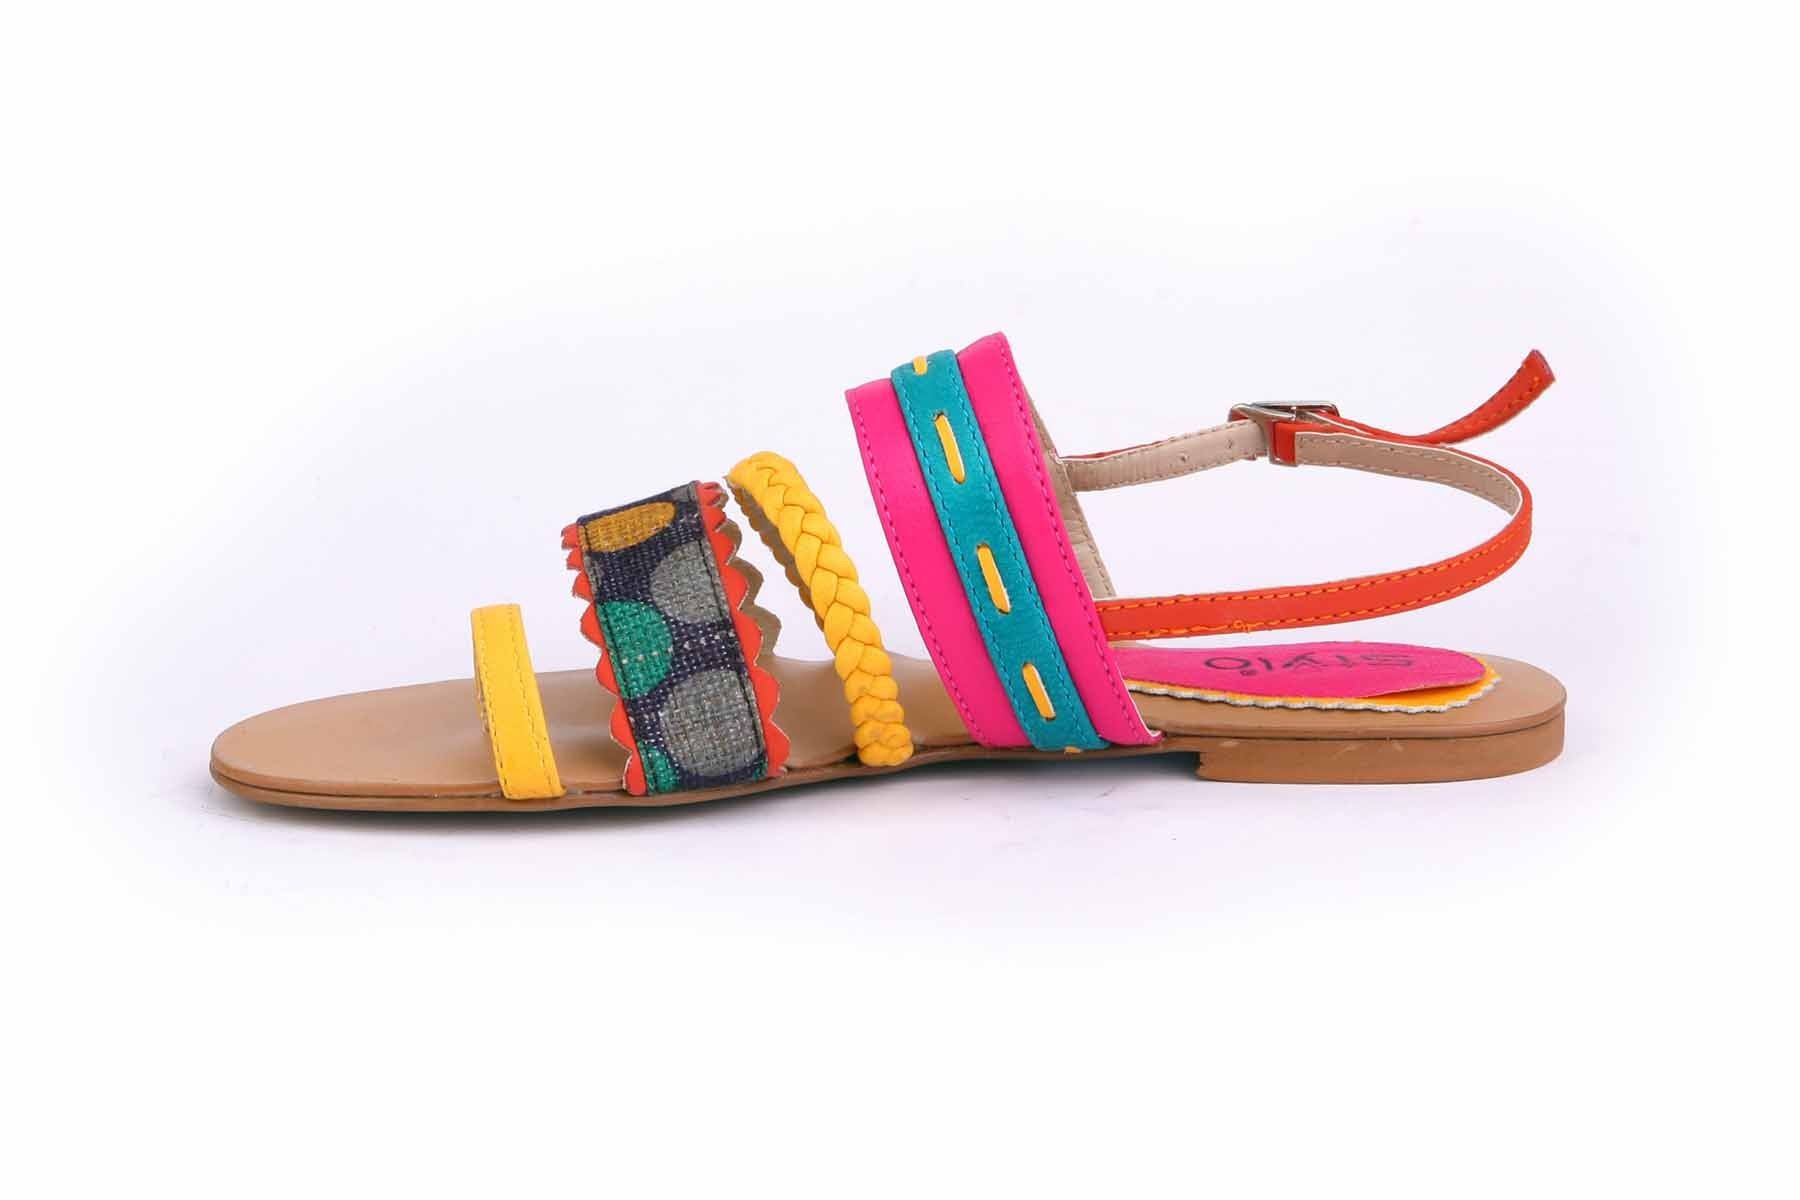 New collection of ladies footwear